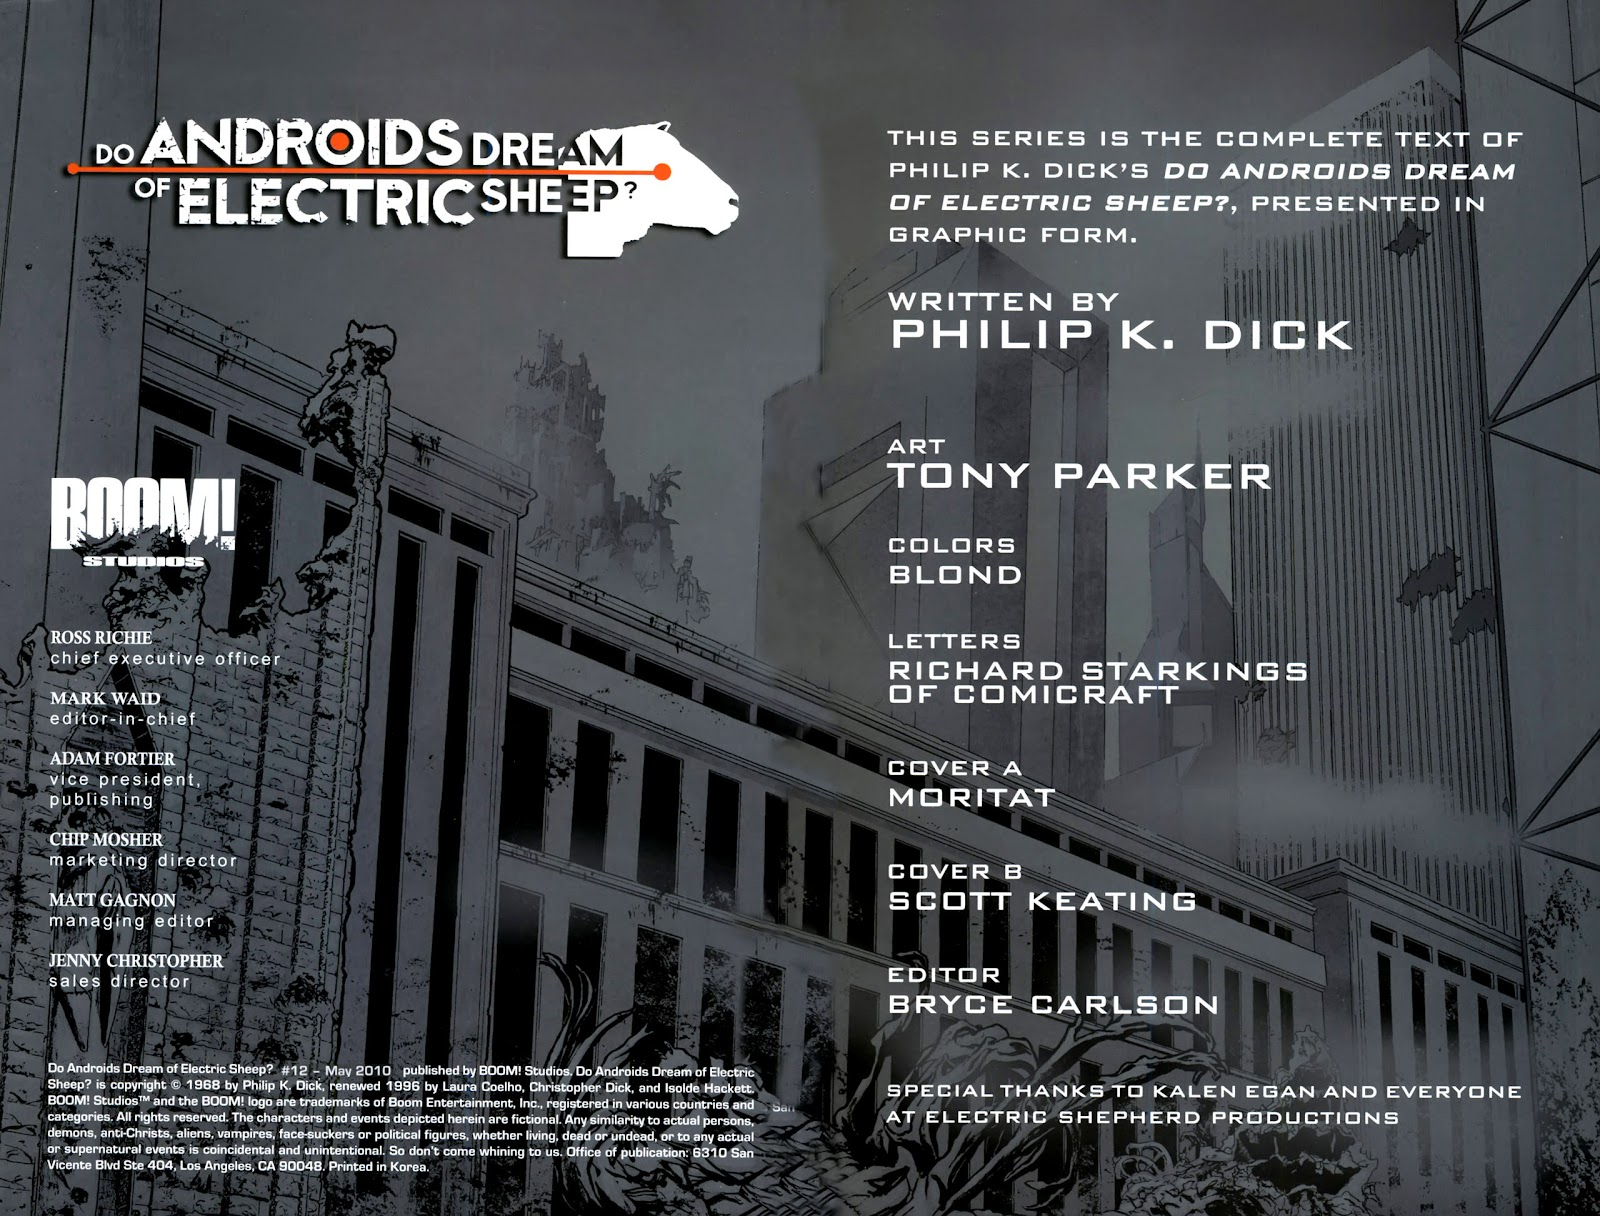 essay on do androids dream about electric sheep Emerson essays first series summary - duration: 1:17 артем ельцов no views english dialogue examples essay - duration: 1:17.